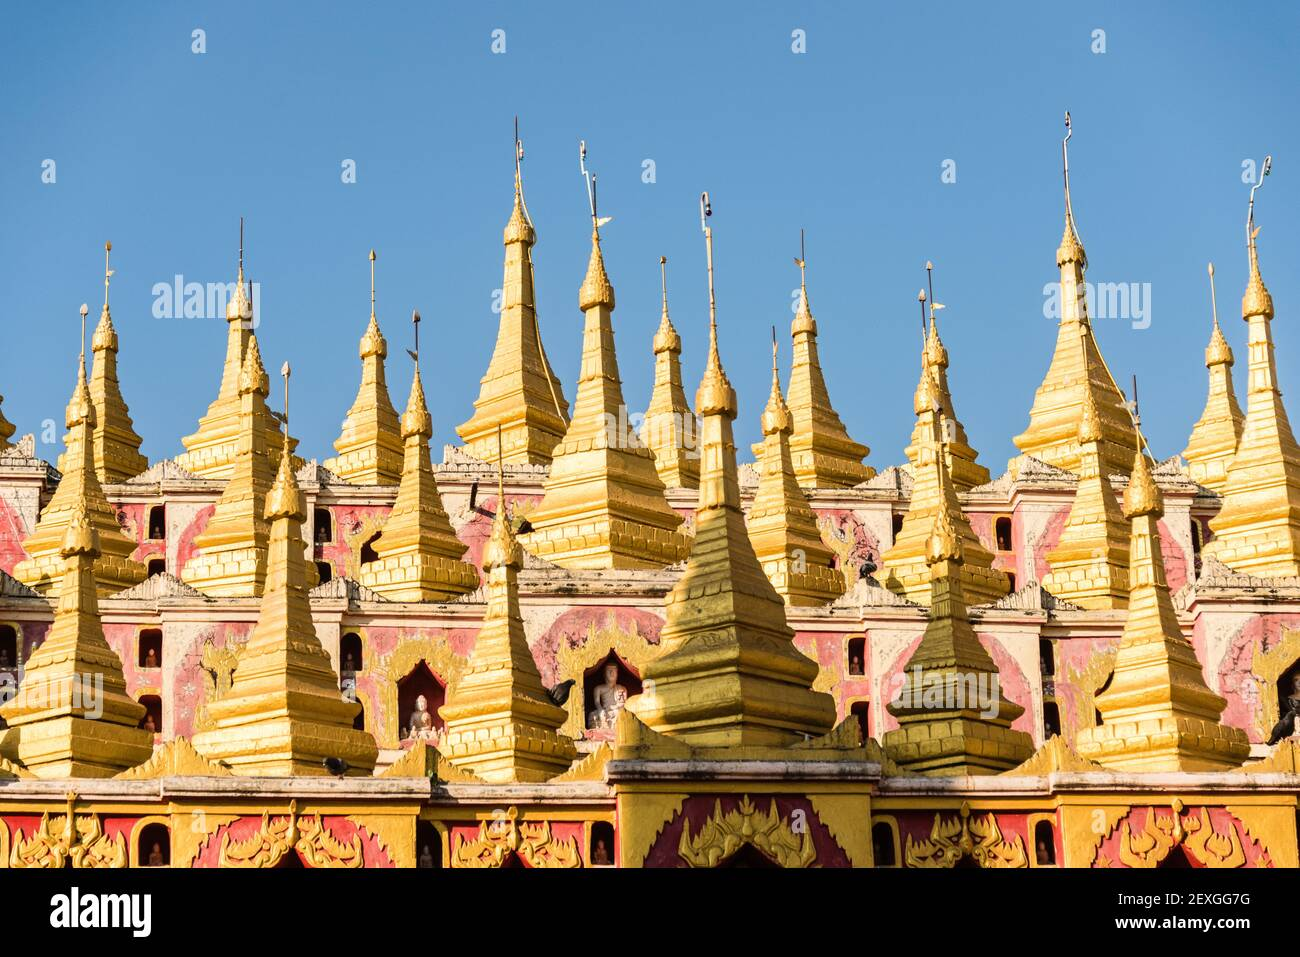 Exterior of the Moe Hnyin Than Boaddai Temple in Monywa, Myanmar Stock Photo